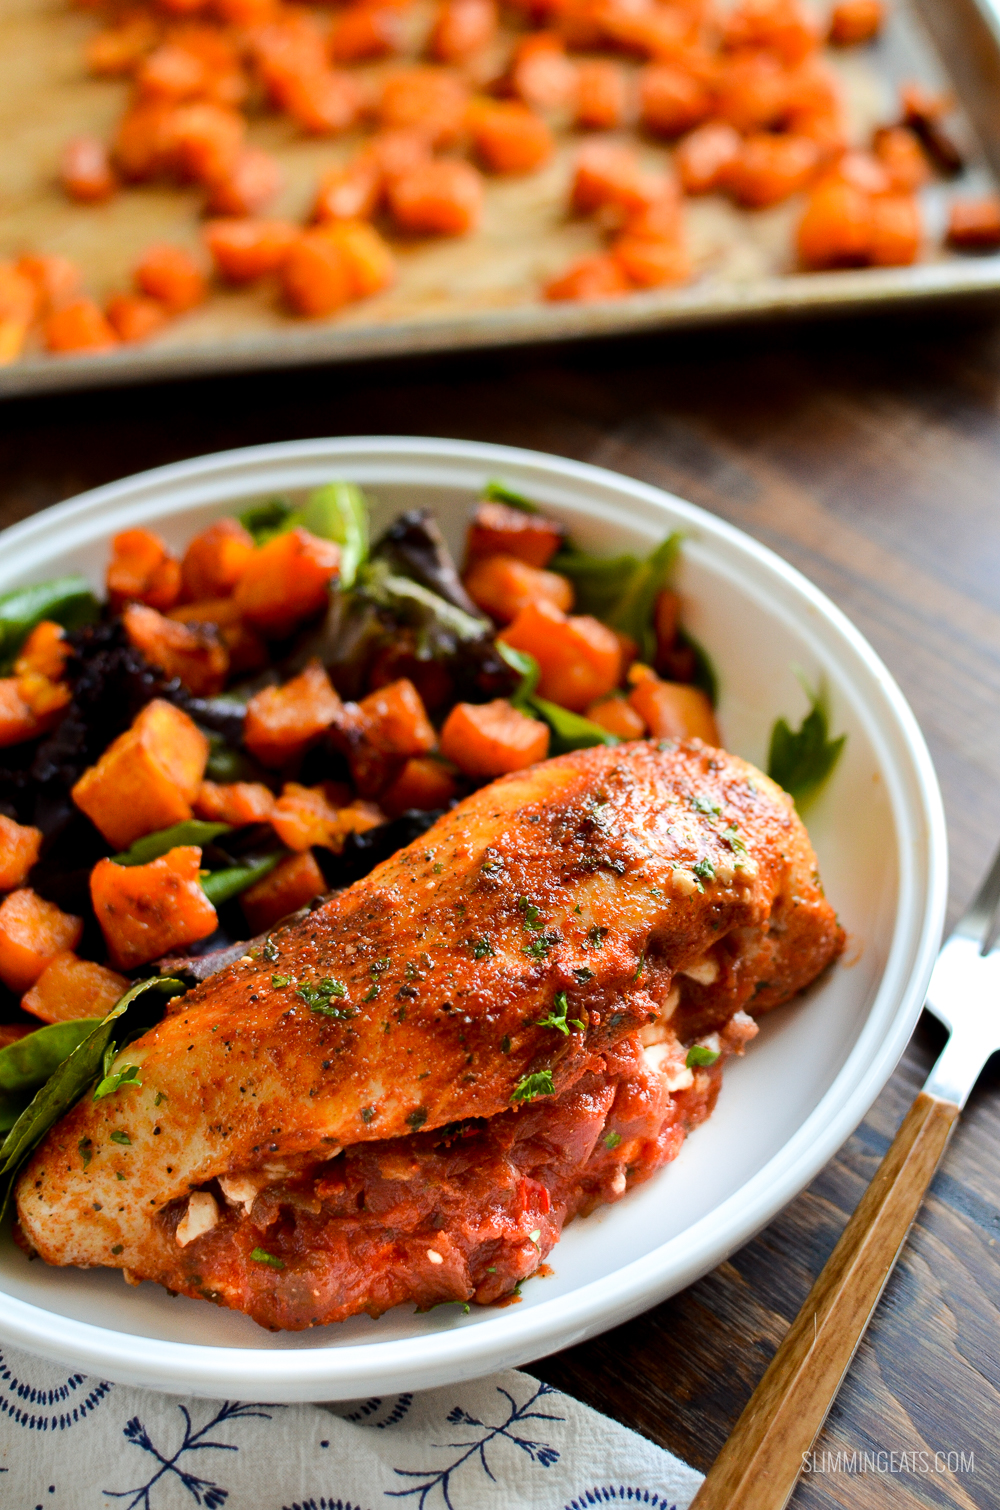 spicy chicken stuffed with feta cheese and salsa on white bowl with baby greens and roasted squash